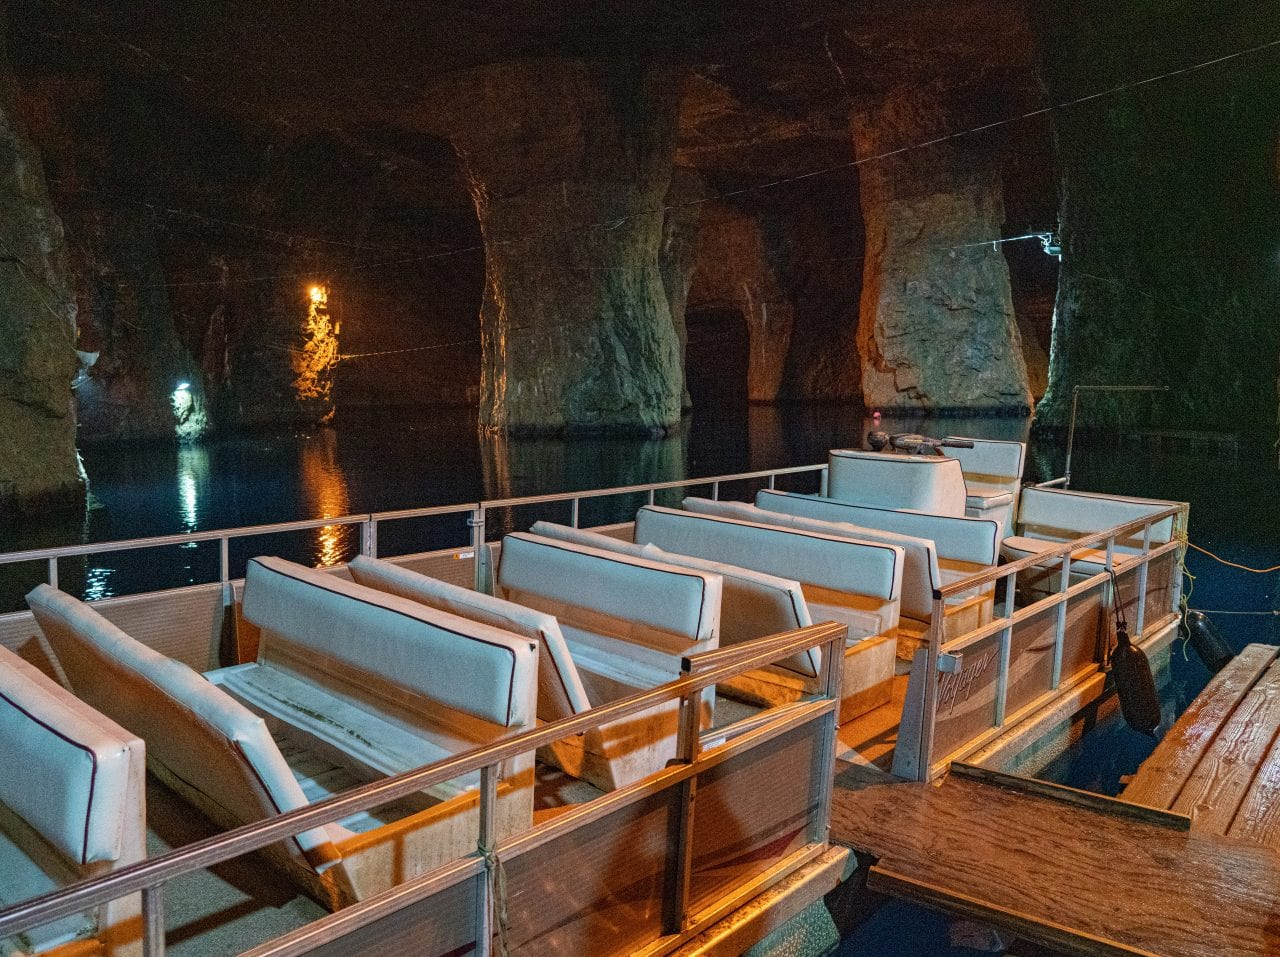 Boat at the Bonne Terre Mine